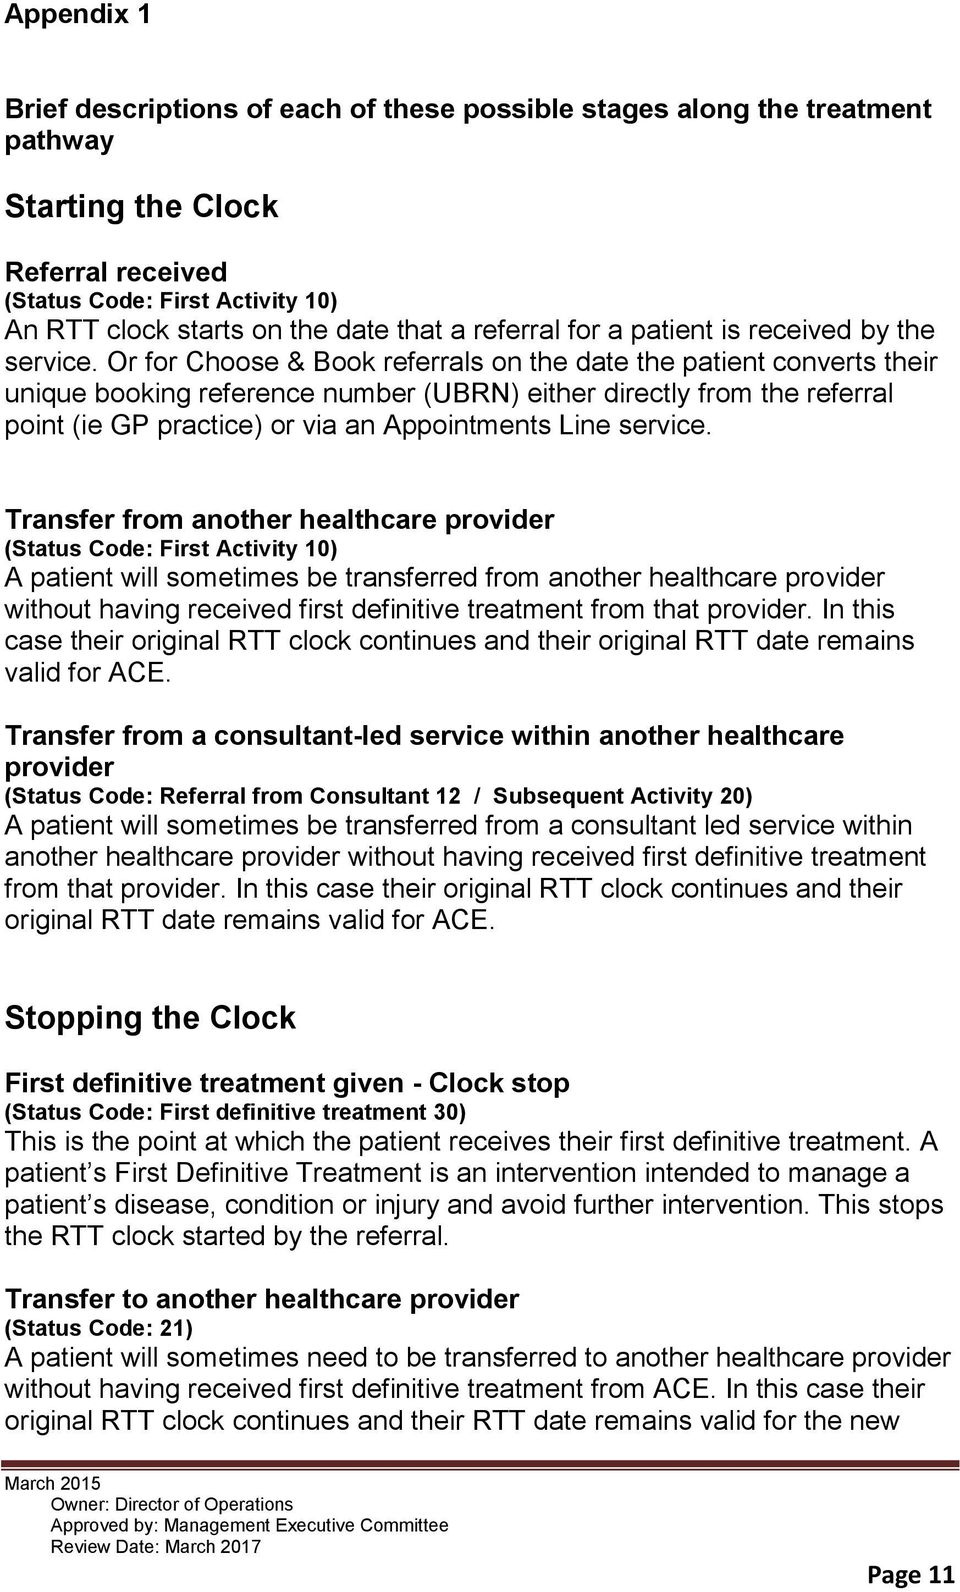 Or for Choose & Book referrals on the date the patient converts their unique booking reference number (UBRN) either directly from the referral point (ie GP practice) or via an Appointments Line